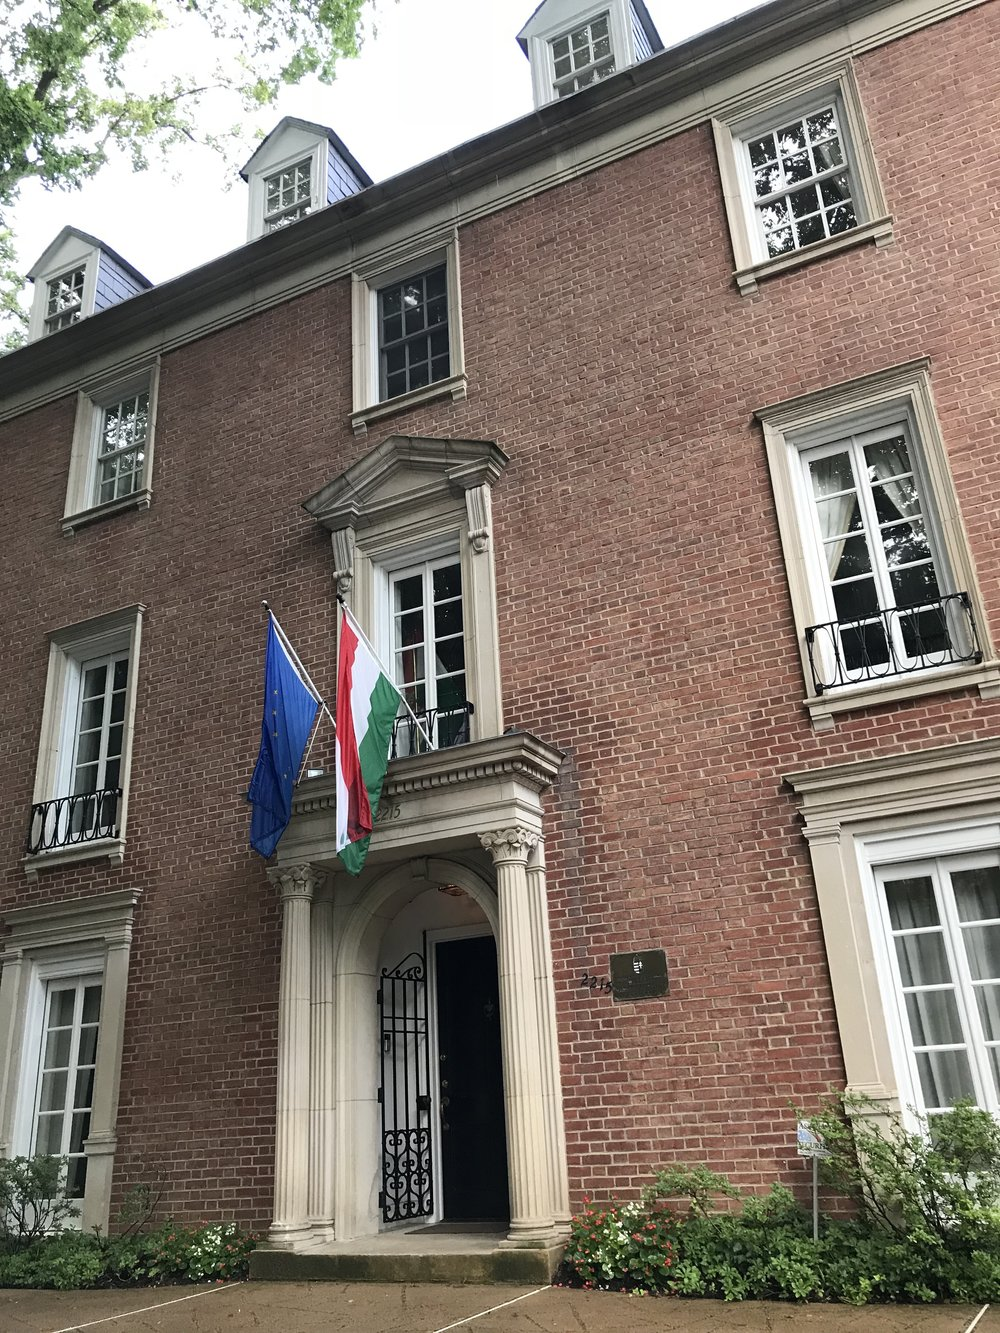 The Residence of the Ambassador of Hungary.